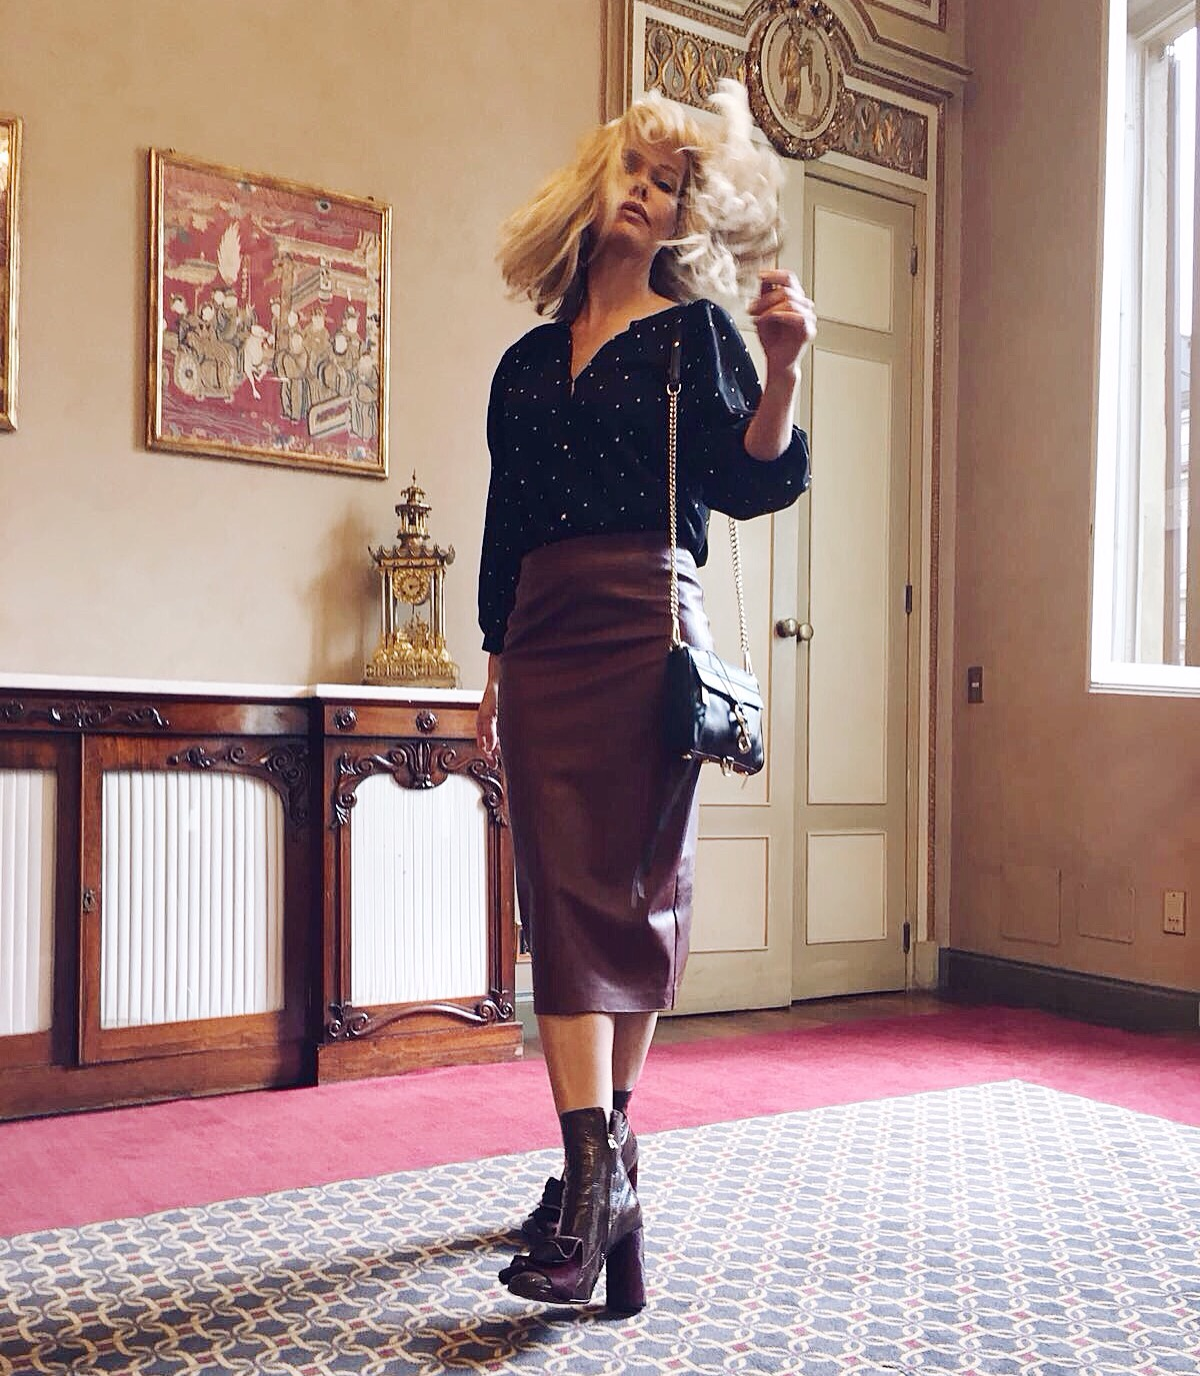 I wore a Kristina Ti blouse, a Pinko skirt, Kalliste shoes and a Rebecca Minkoff bag..Ph by Justine Mattera.